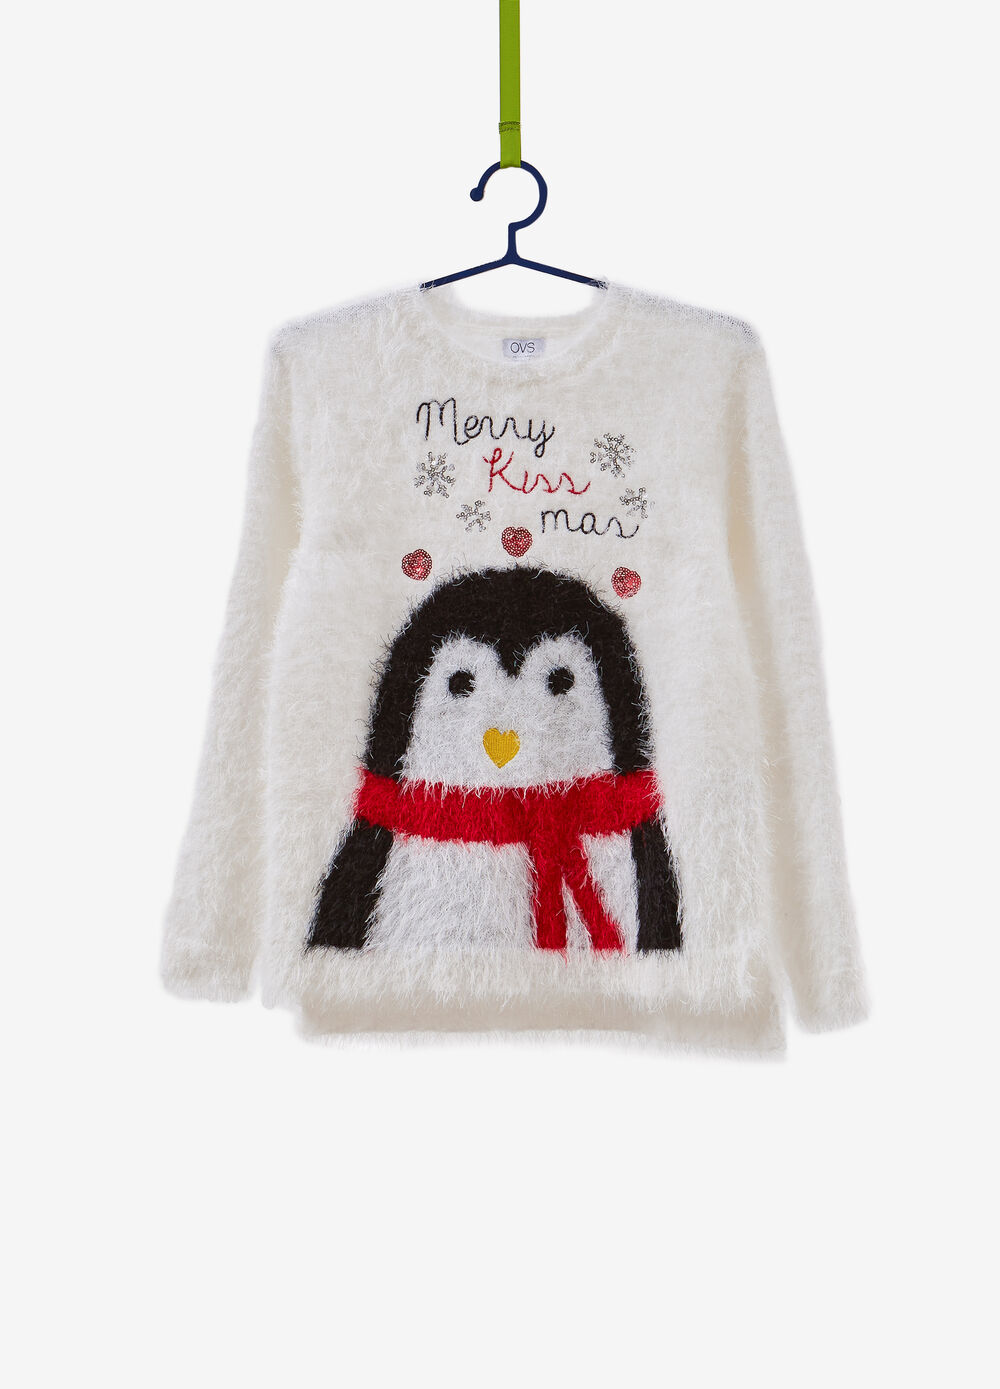 Christmas sweater with penguin embroidery